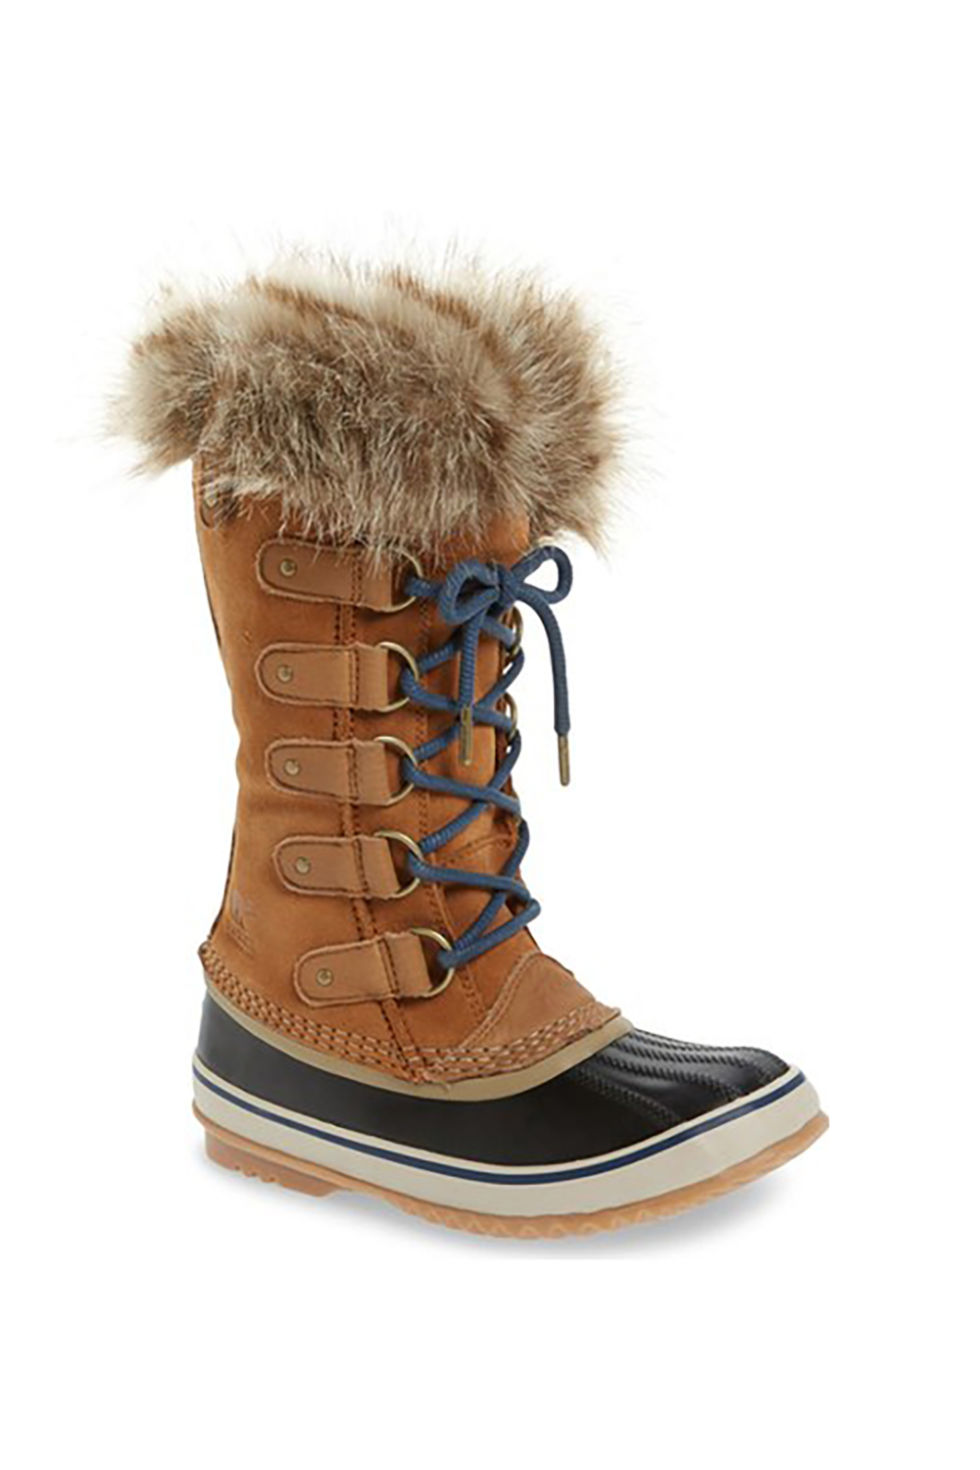 12 Best Snow Boots For Women - Fashionable Winter Boots You&39ll